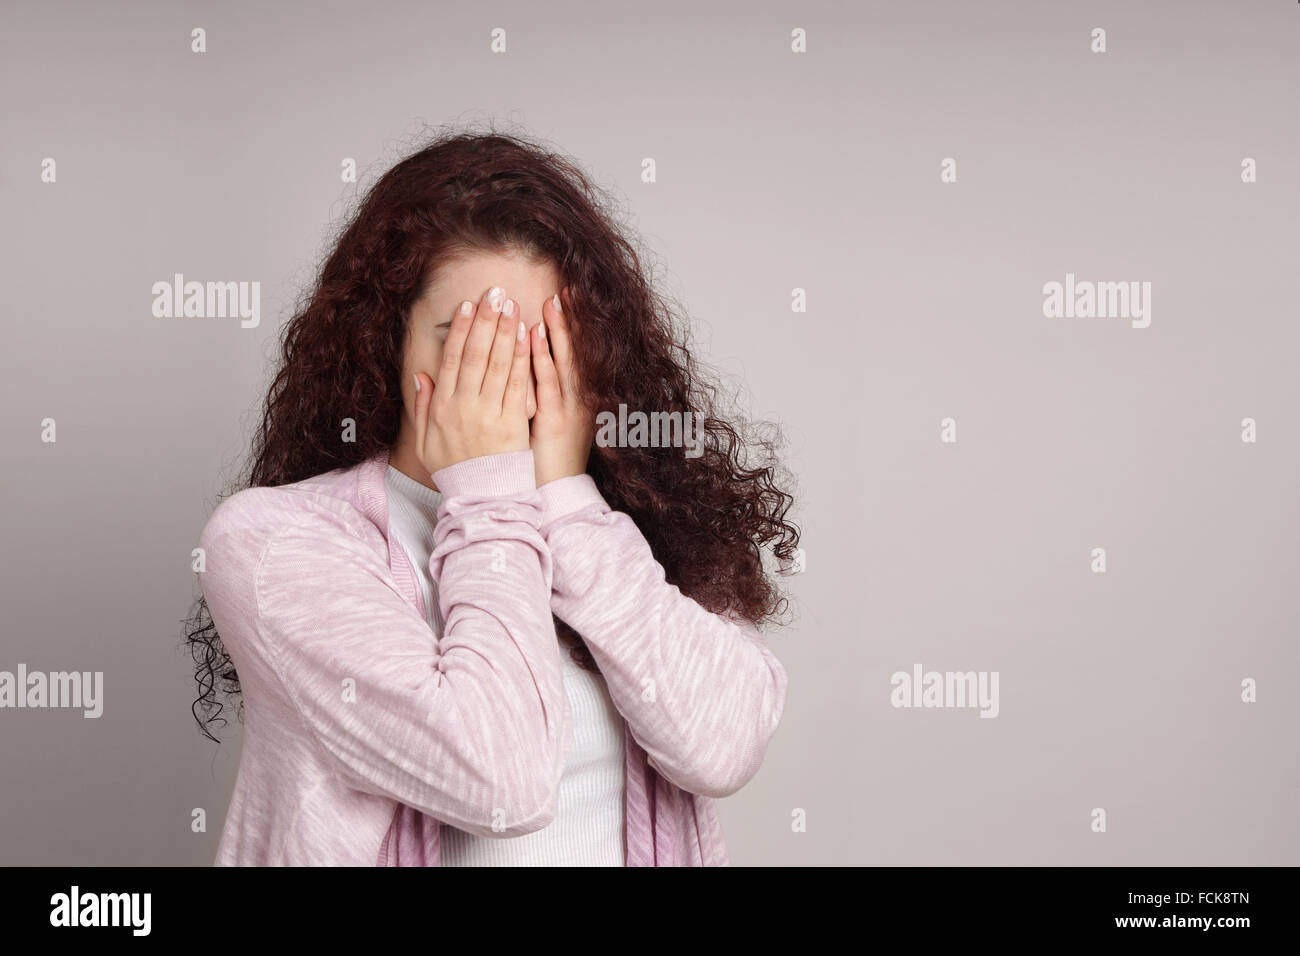 embarrassed young woman hiding her face - Stock Image